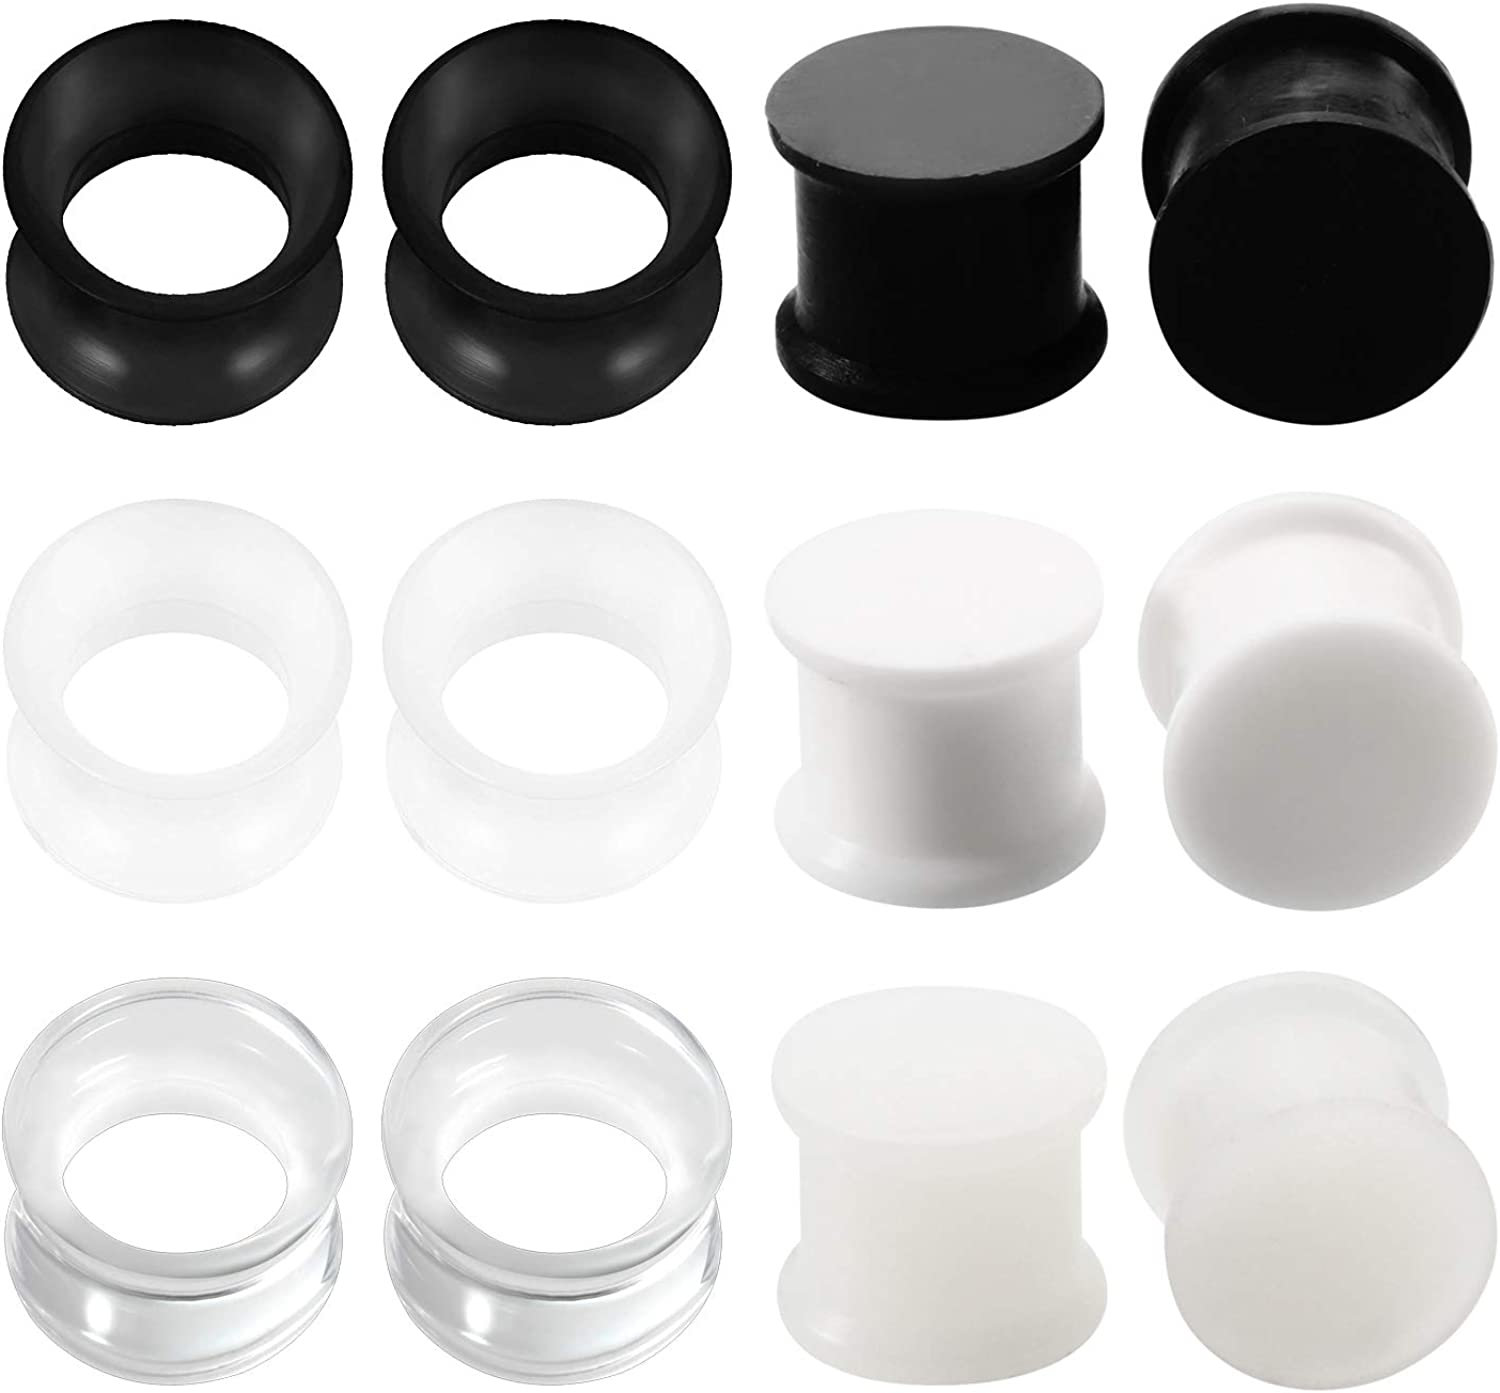 One Pair Double Flare Flexible Silicone Ear Tunnels Plugs Earlets Gauges 2-16mm